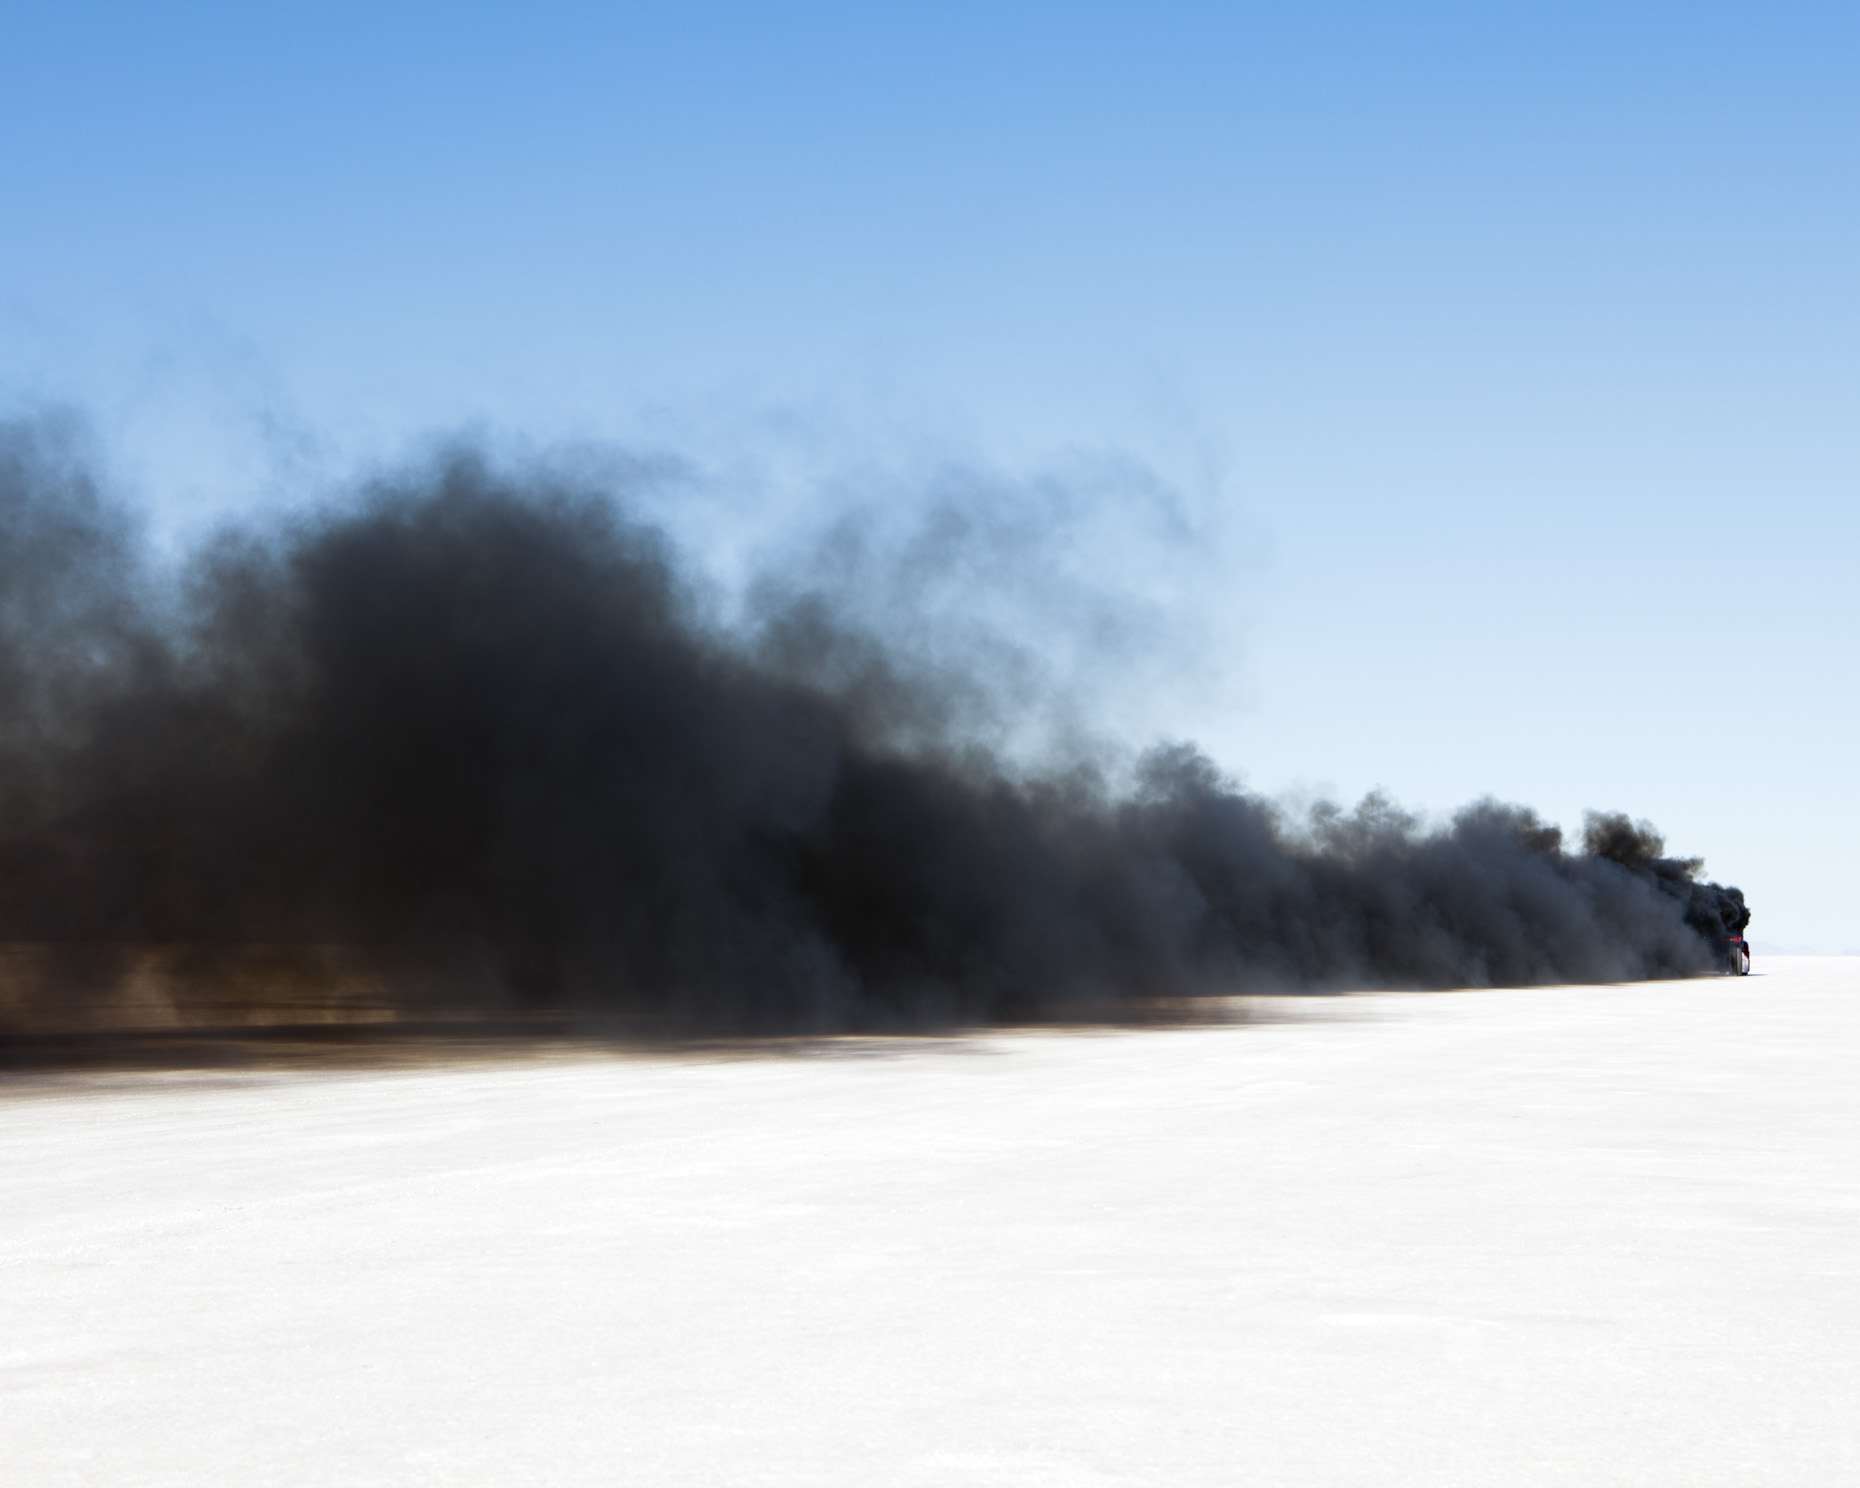 Exhaust plume form worlds fastet semi-truck, World of Speed, Bonneville Salt Flats, Utah - Paul Edmondson